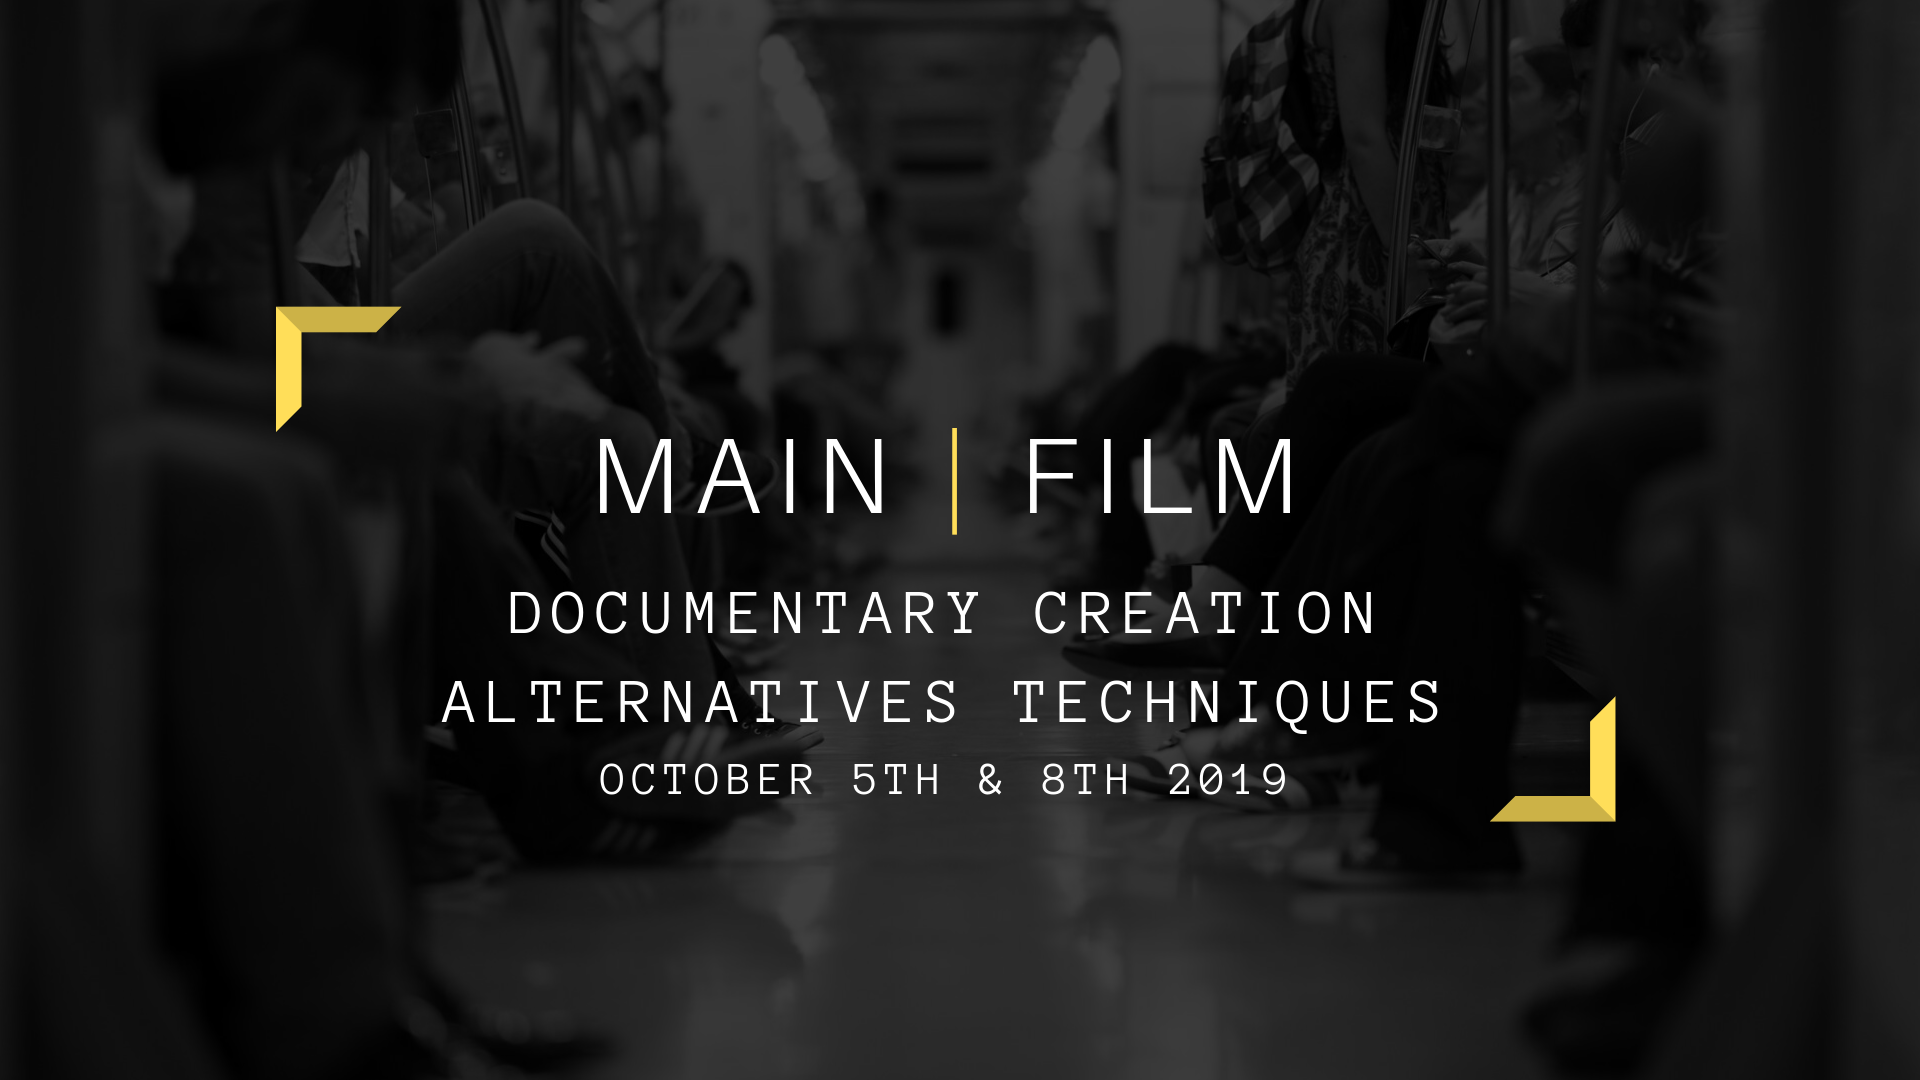 DOCUMENTARY CREATION ALTERNATIVES TECHNIQUES